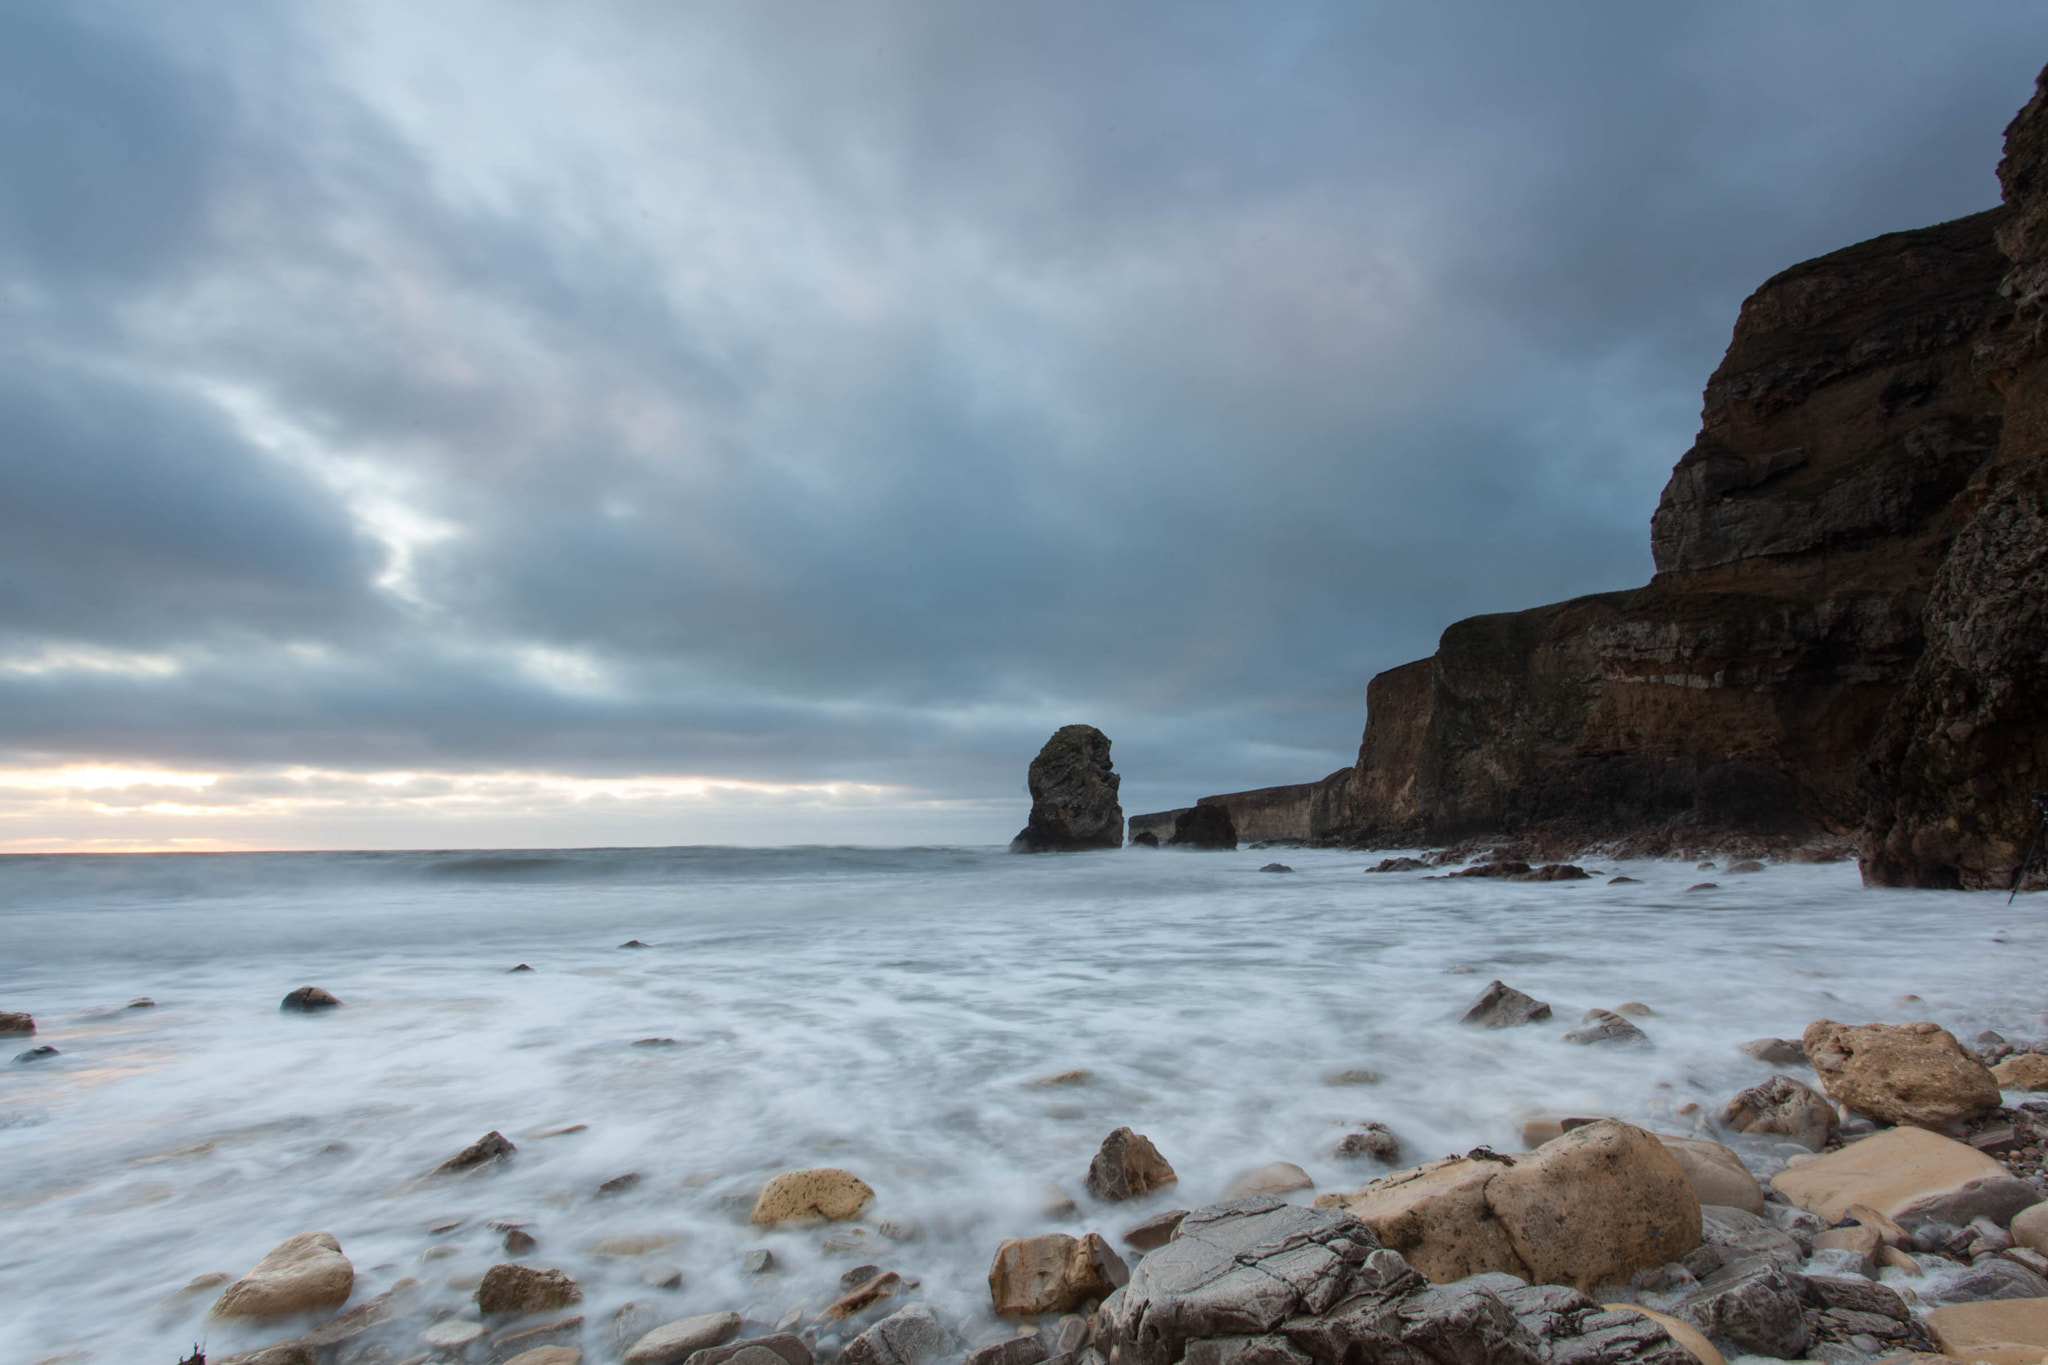 Photograph Marsden by Carl Mickleburgh on 500px